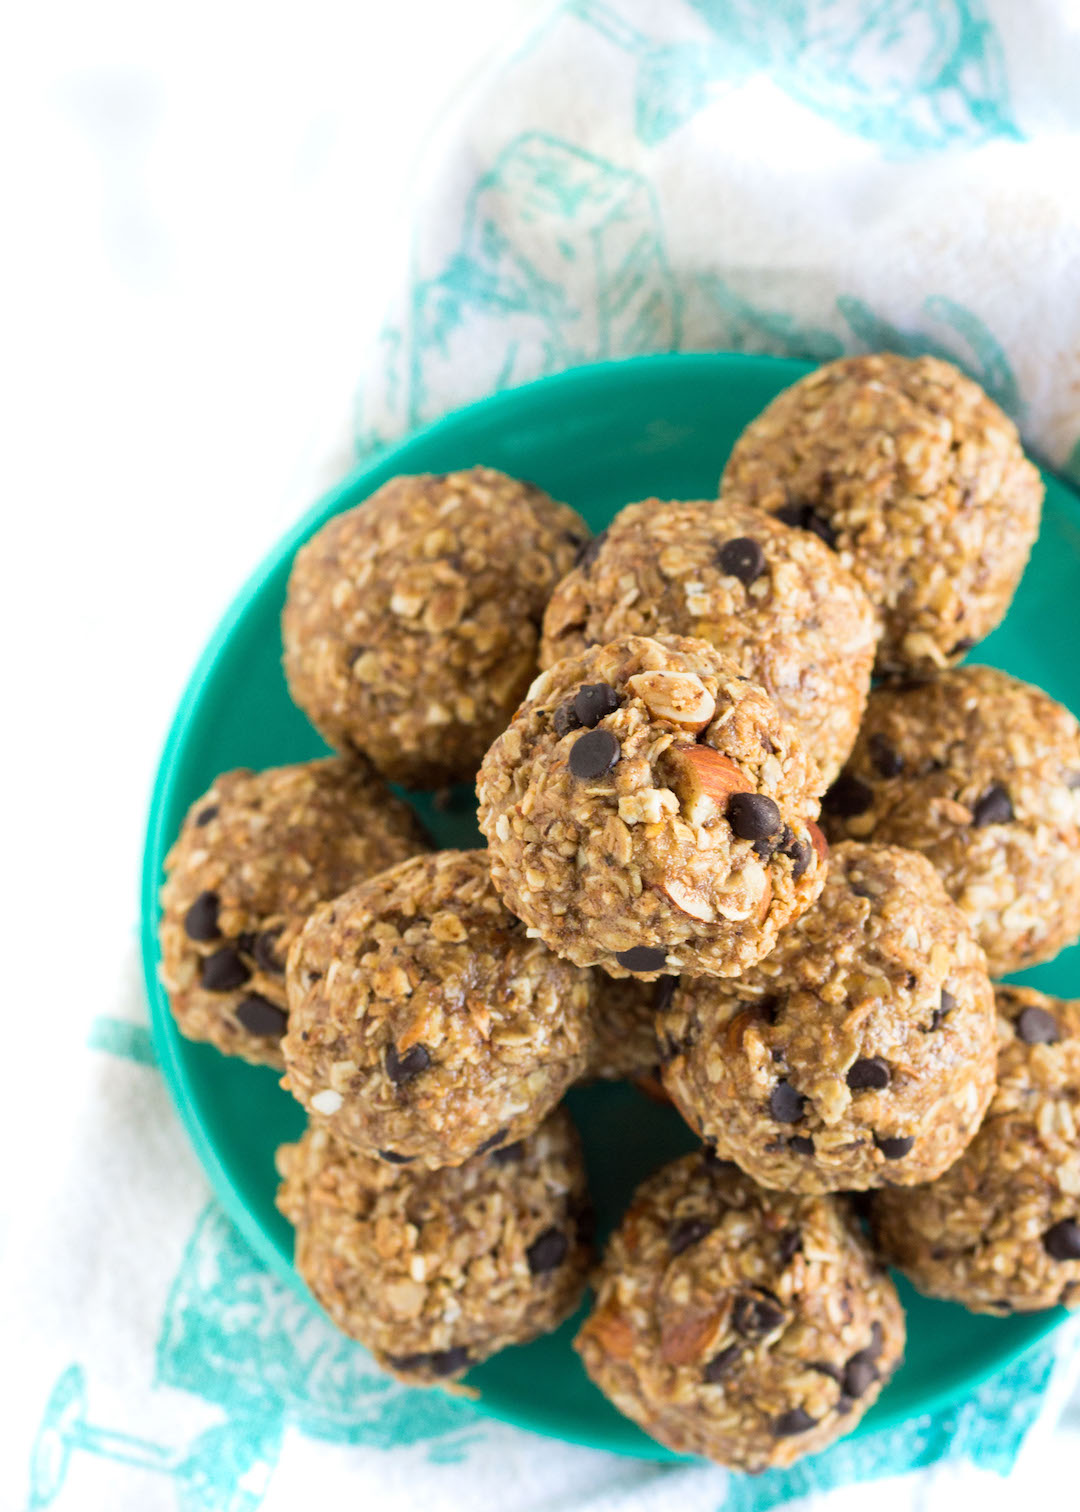 Toasted Coconut Almond Energy Bites are the perfect simple and easy to make oat-based, granola-like snack that everyone will love!